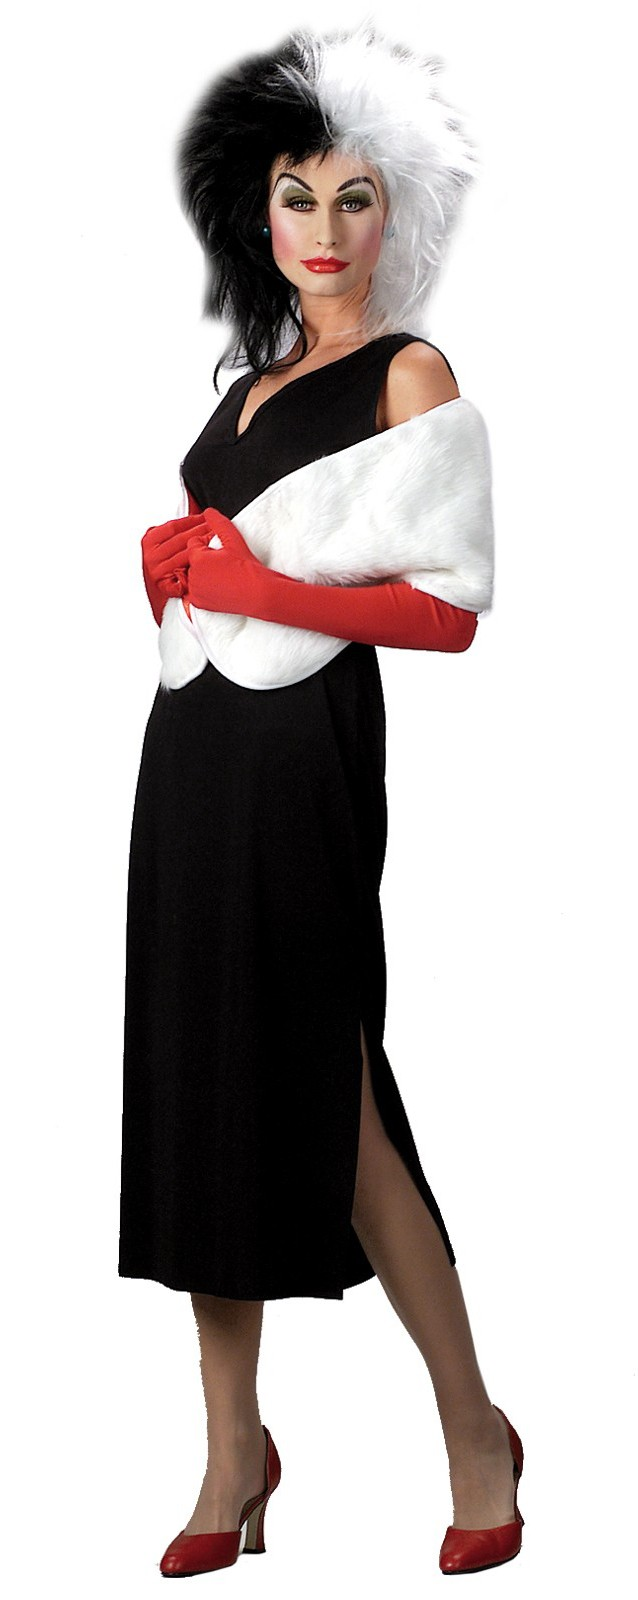 101 dalmatians disney cruella de vil adult costume. Black Bedroom Furniture Sets. Home Design Ideas